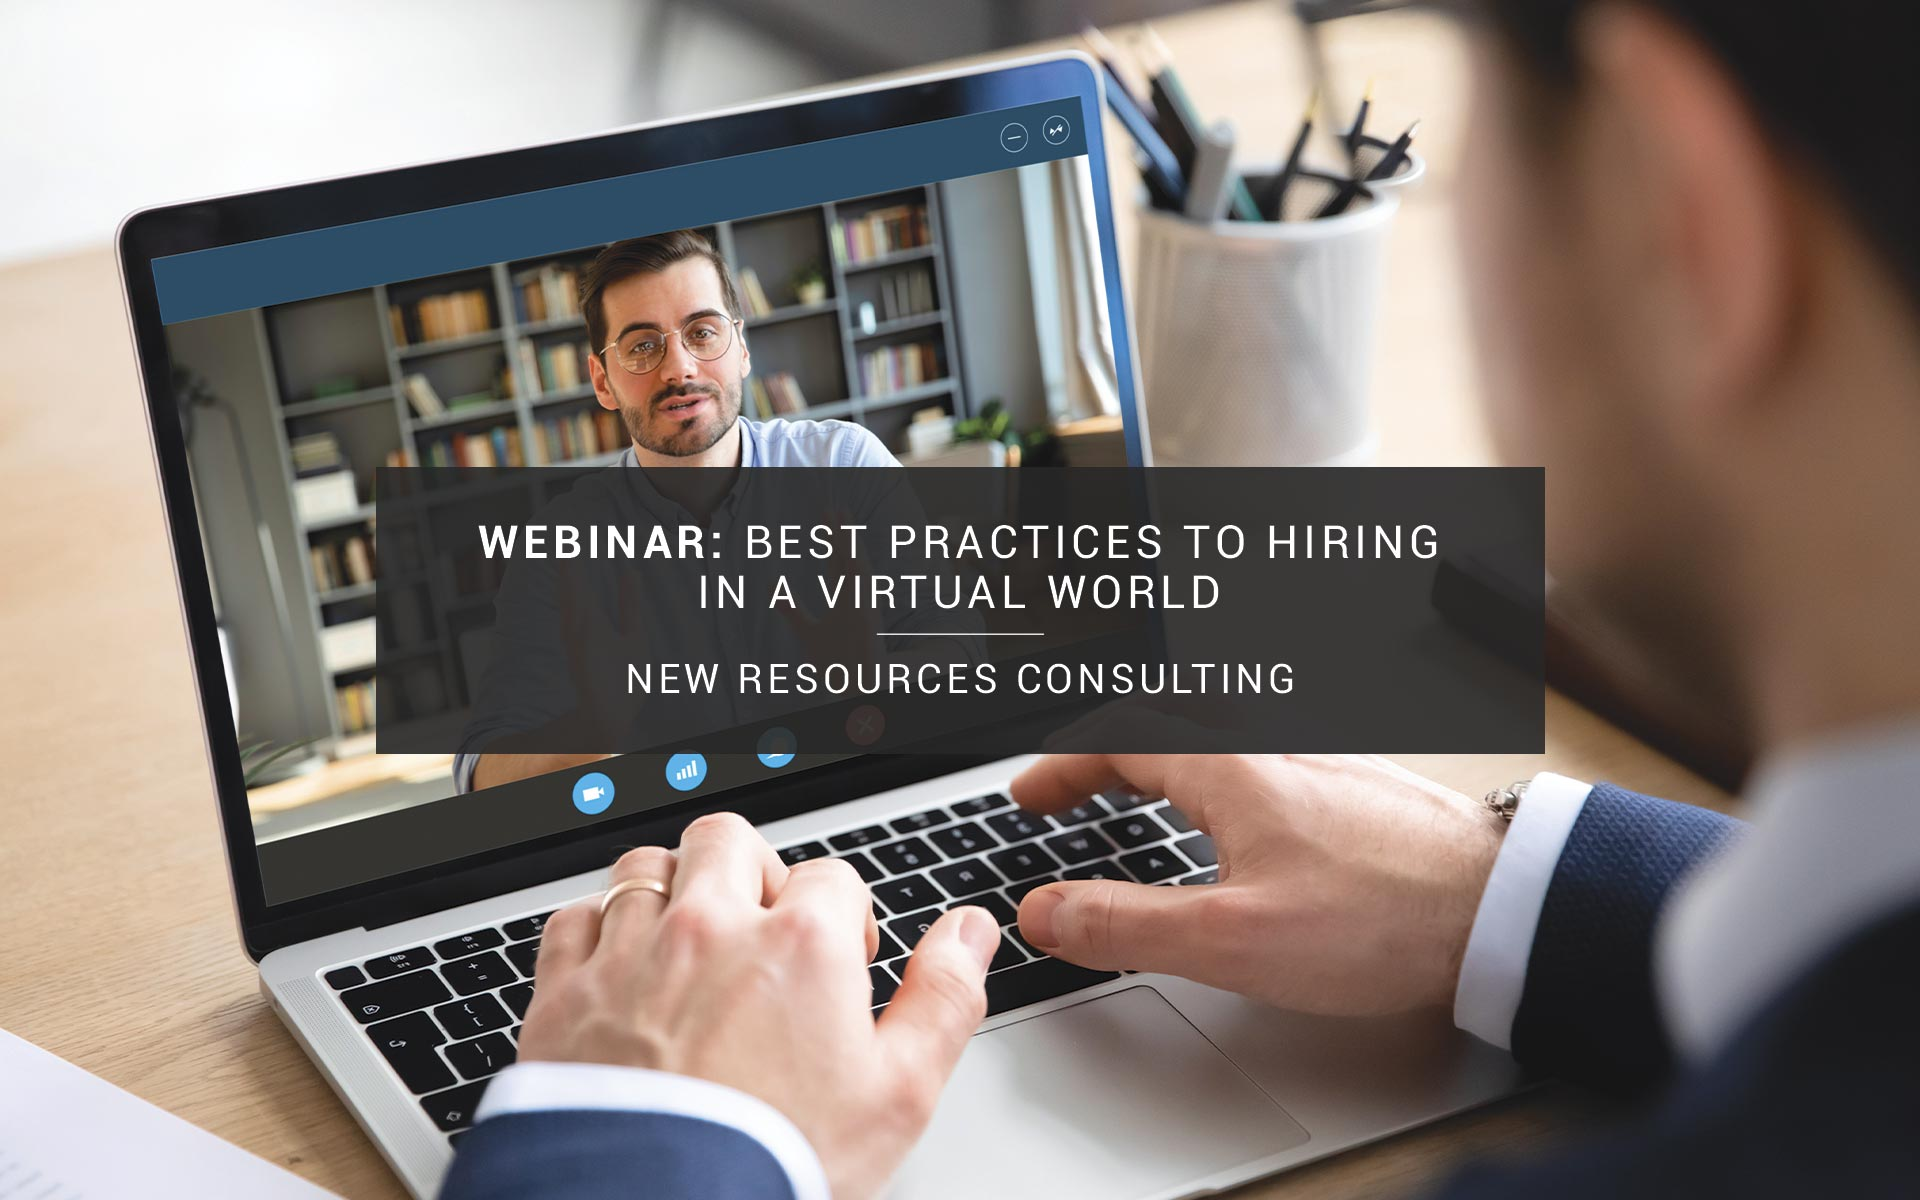 Best Practices to Hiring in a Virtual World